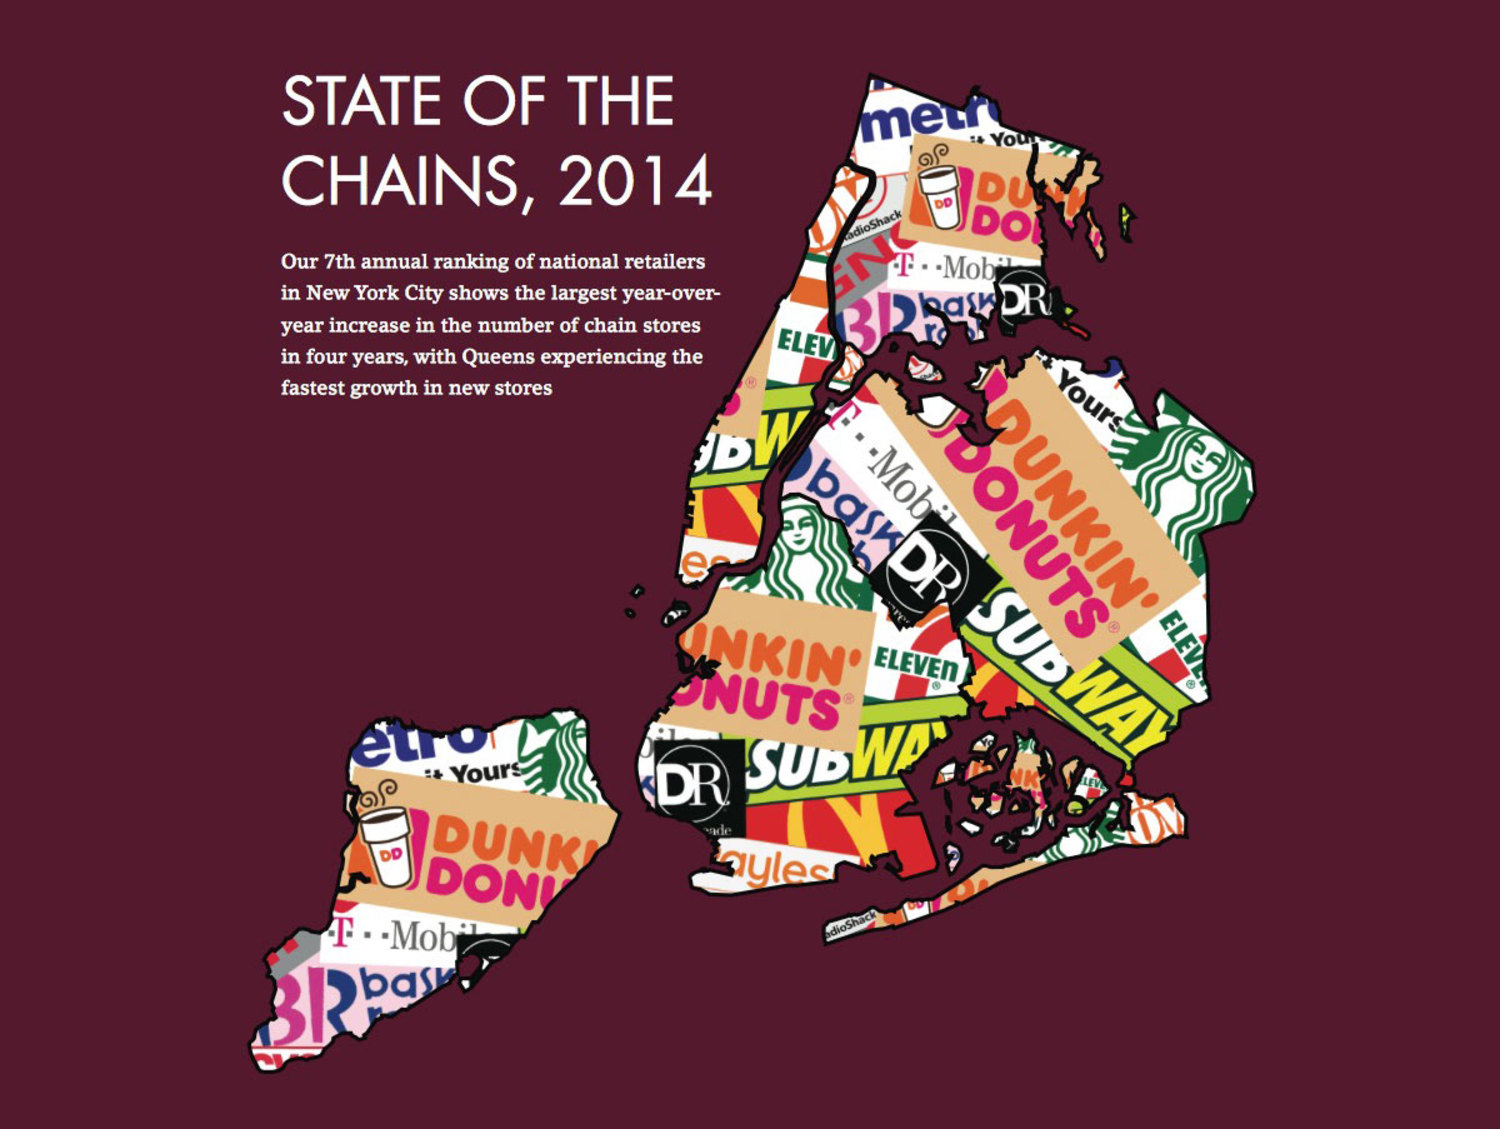 New York City's State of the Chains Report, 2014